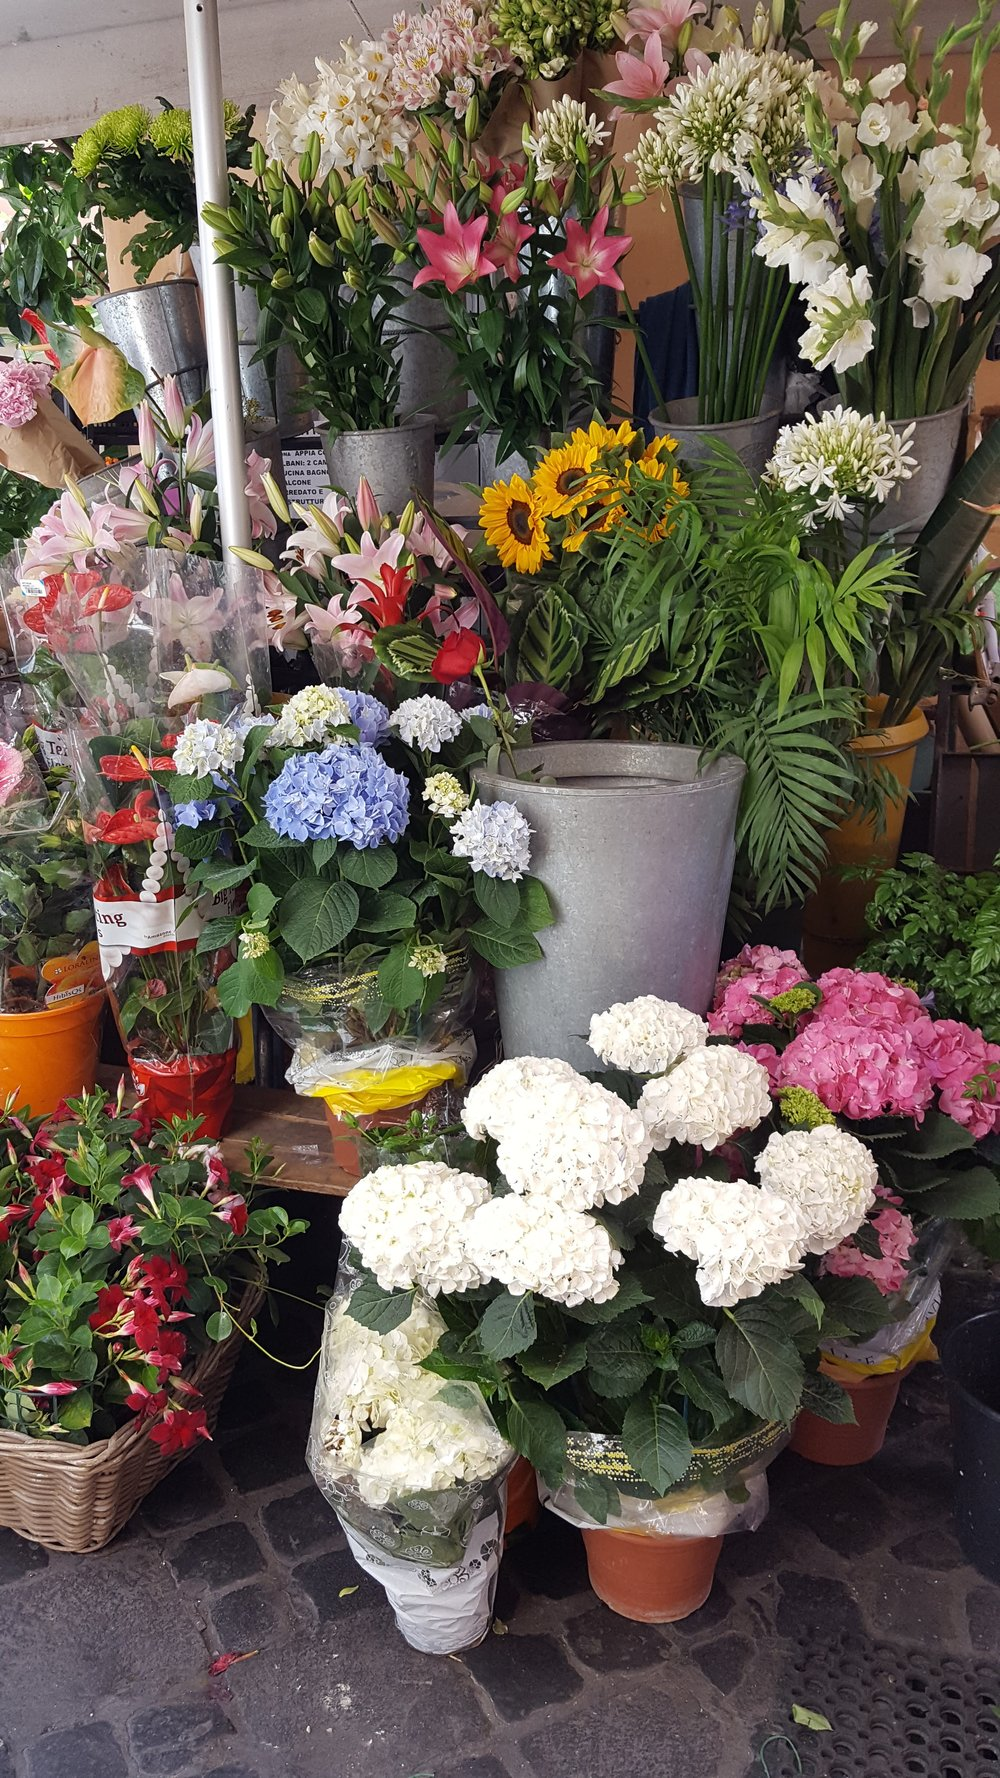 Neighborhood florist in Tridente